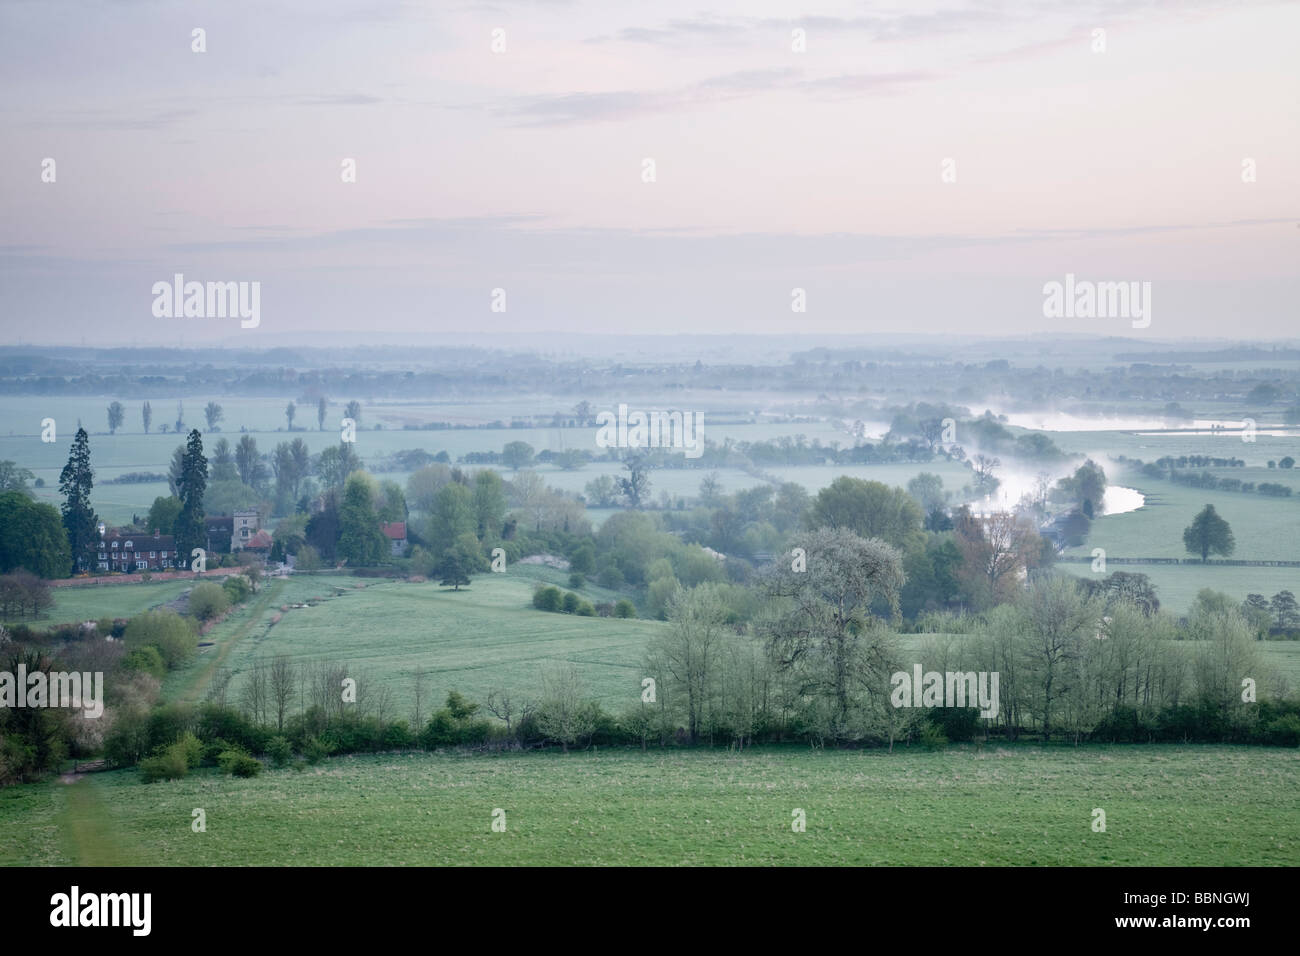 Dawn over the River Thames from Wittenham Clumps near Dorchester, Oxfordshire, Uk - Stock Image